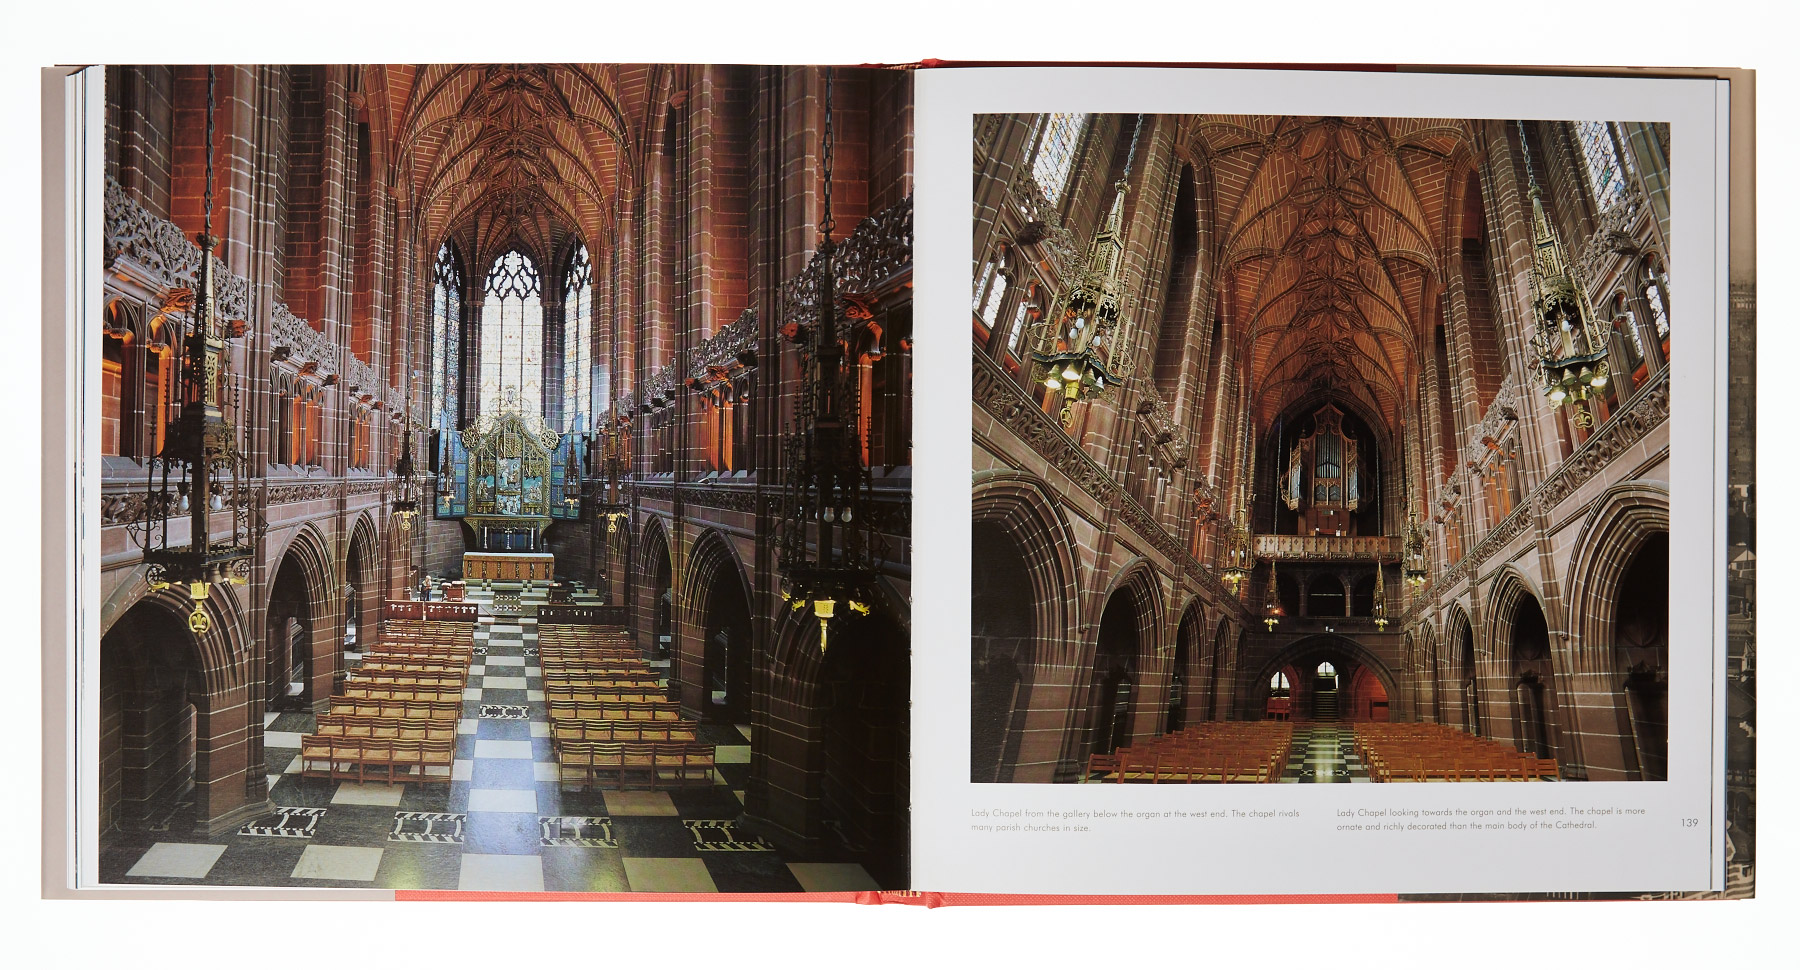 liverpool-cathedral-book-page-138.jpg